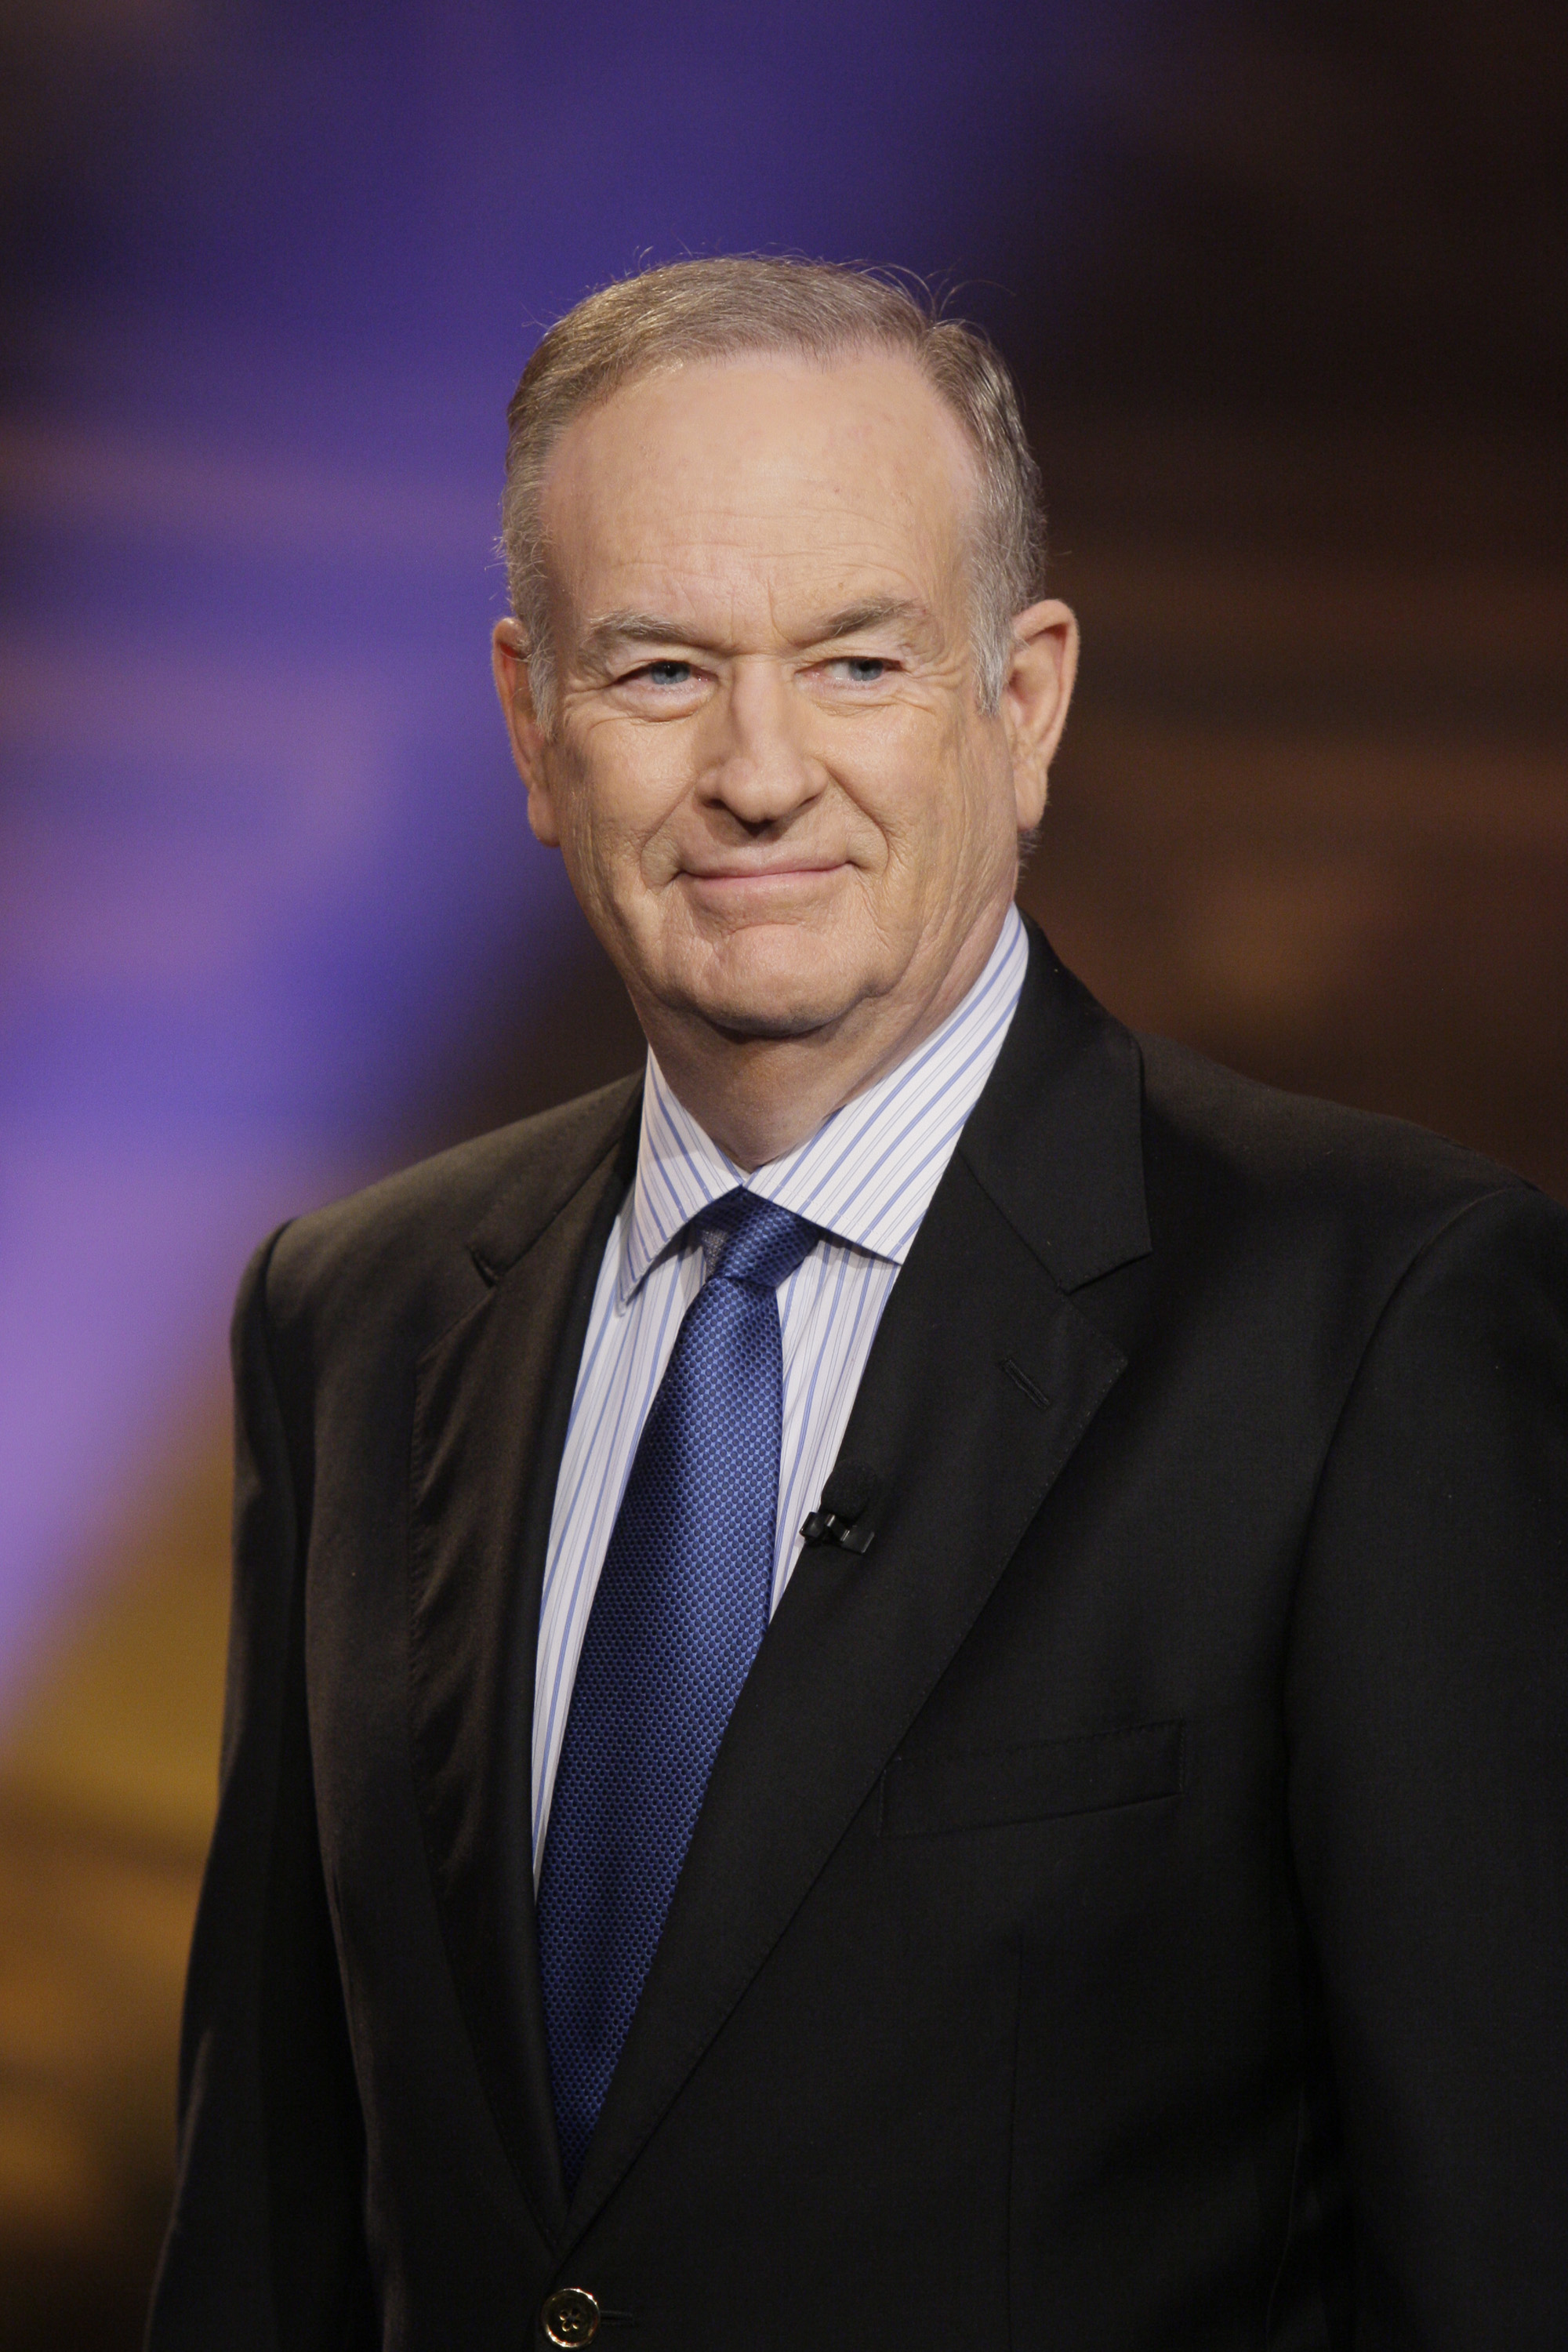 Talk show host Bill O'Reilly on 'The Tonight Show with Jay Leno' on Nov. 18, 2013.